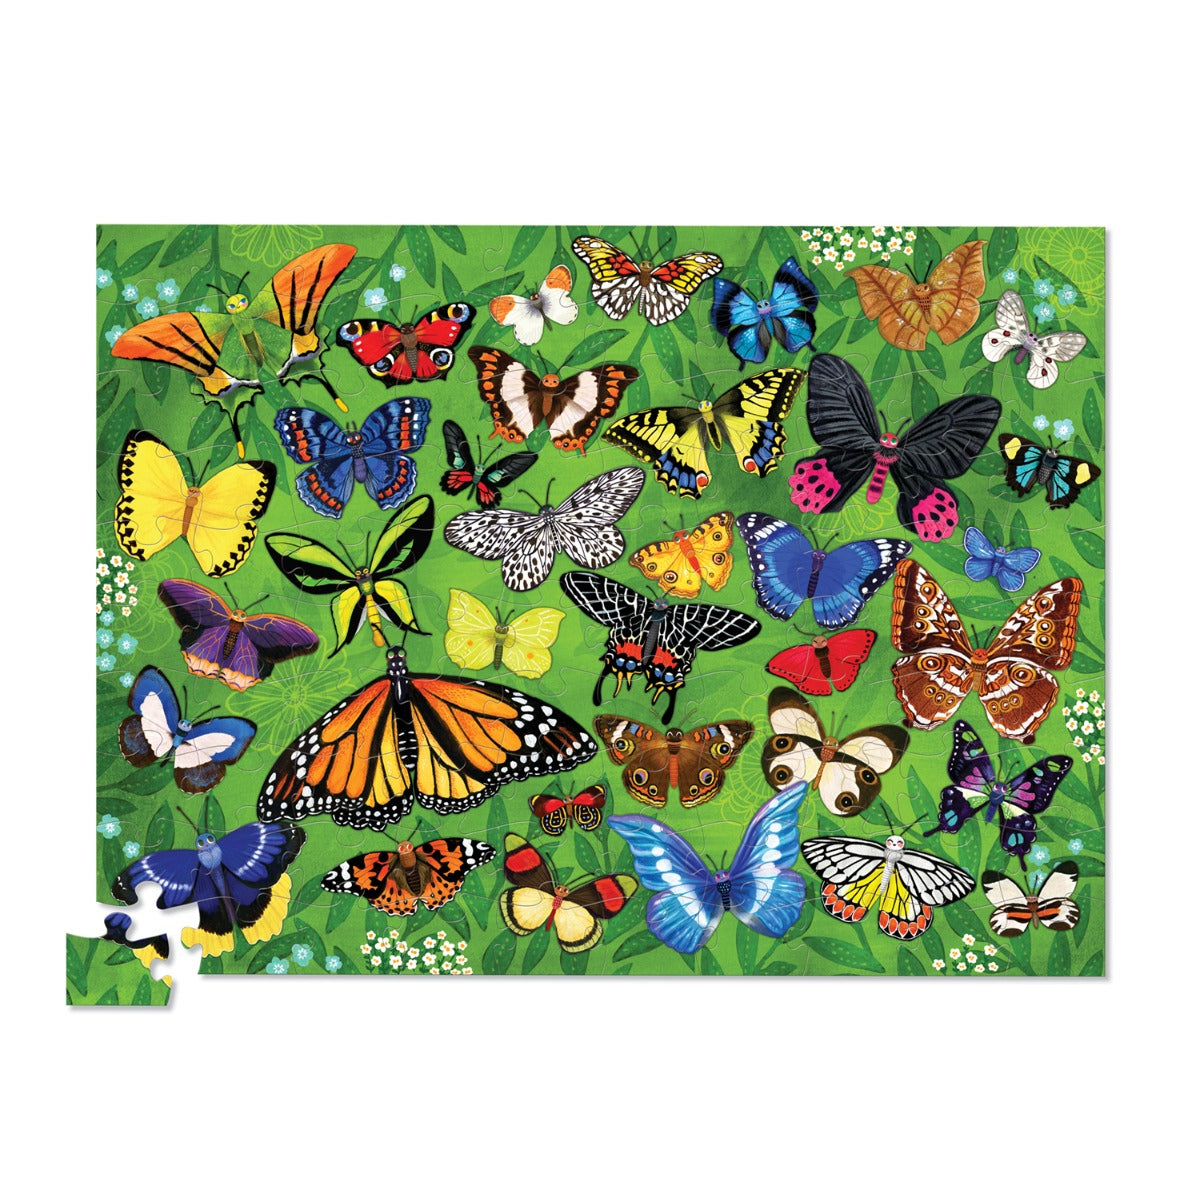 36 Animals Puzzle 100pc - Butterflies